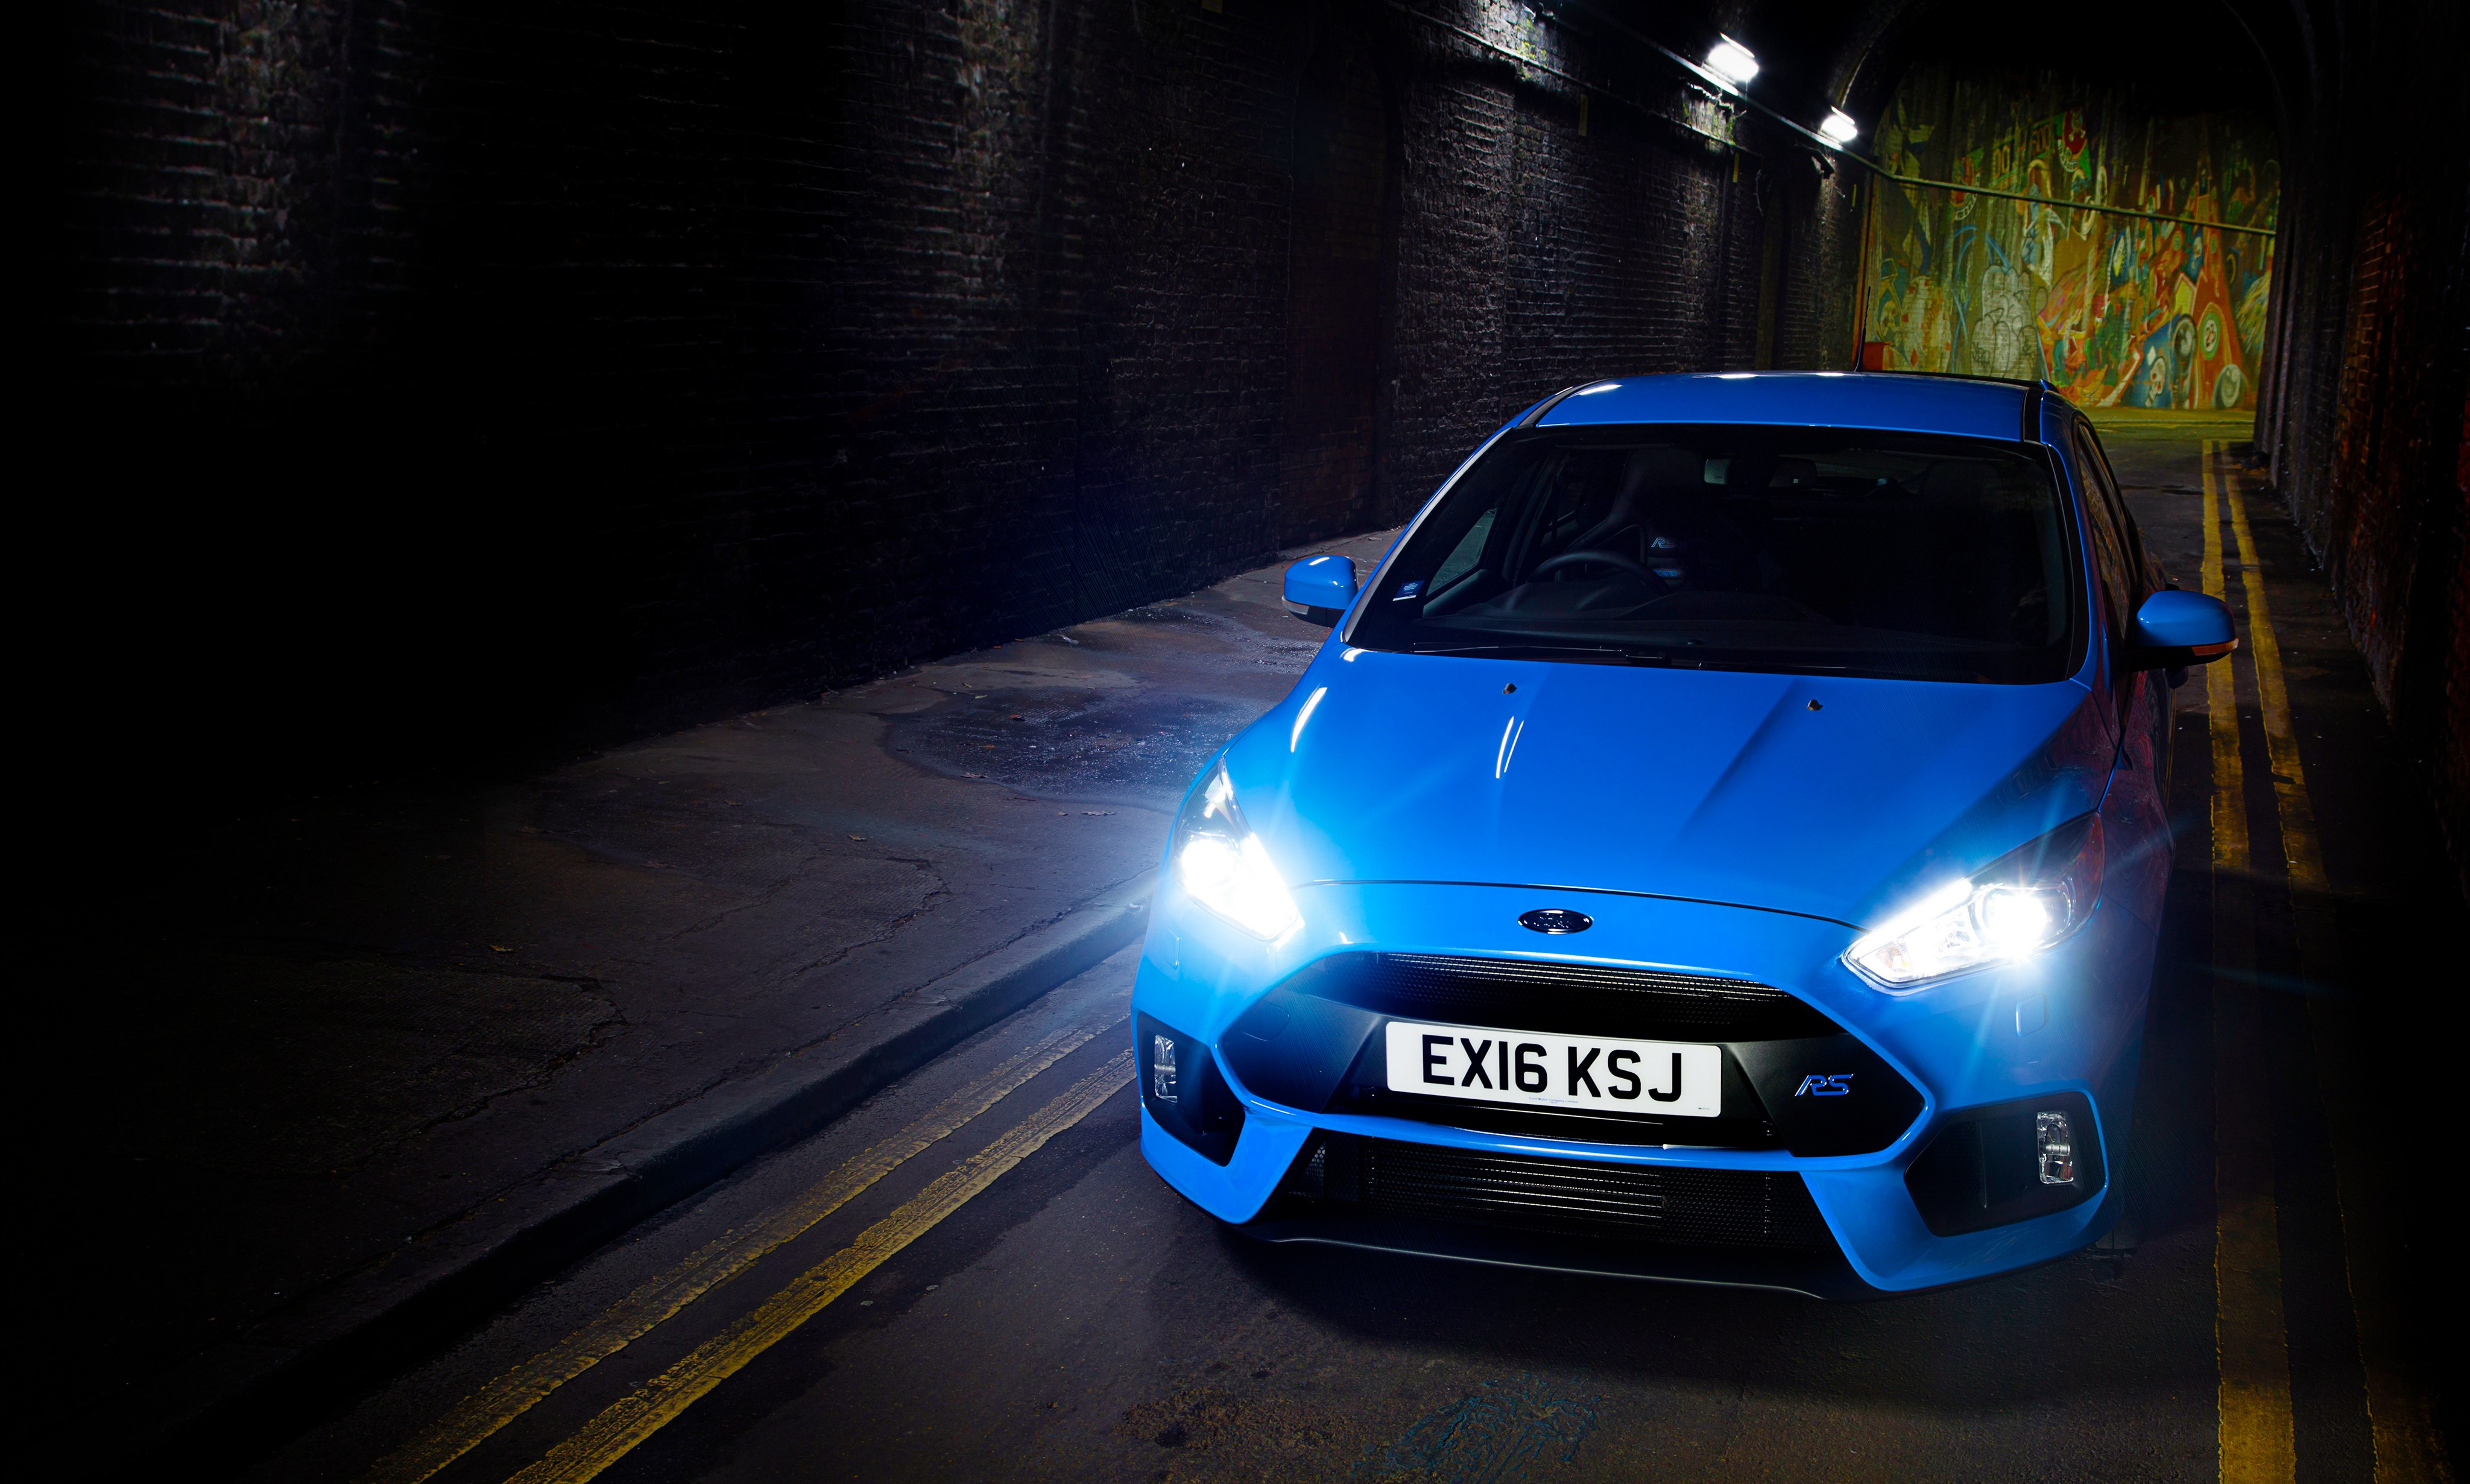 2015 Focus Rs >> Wallpaper Ford Focus RS, hatchback, blue, night, Cars & Bikes #10174